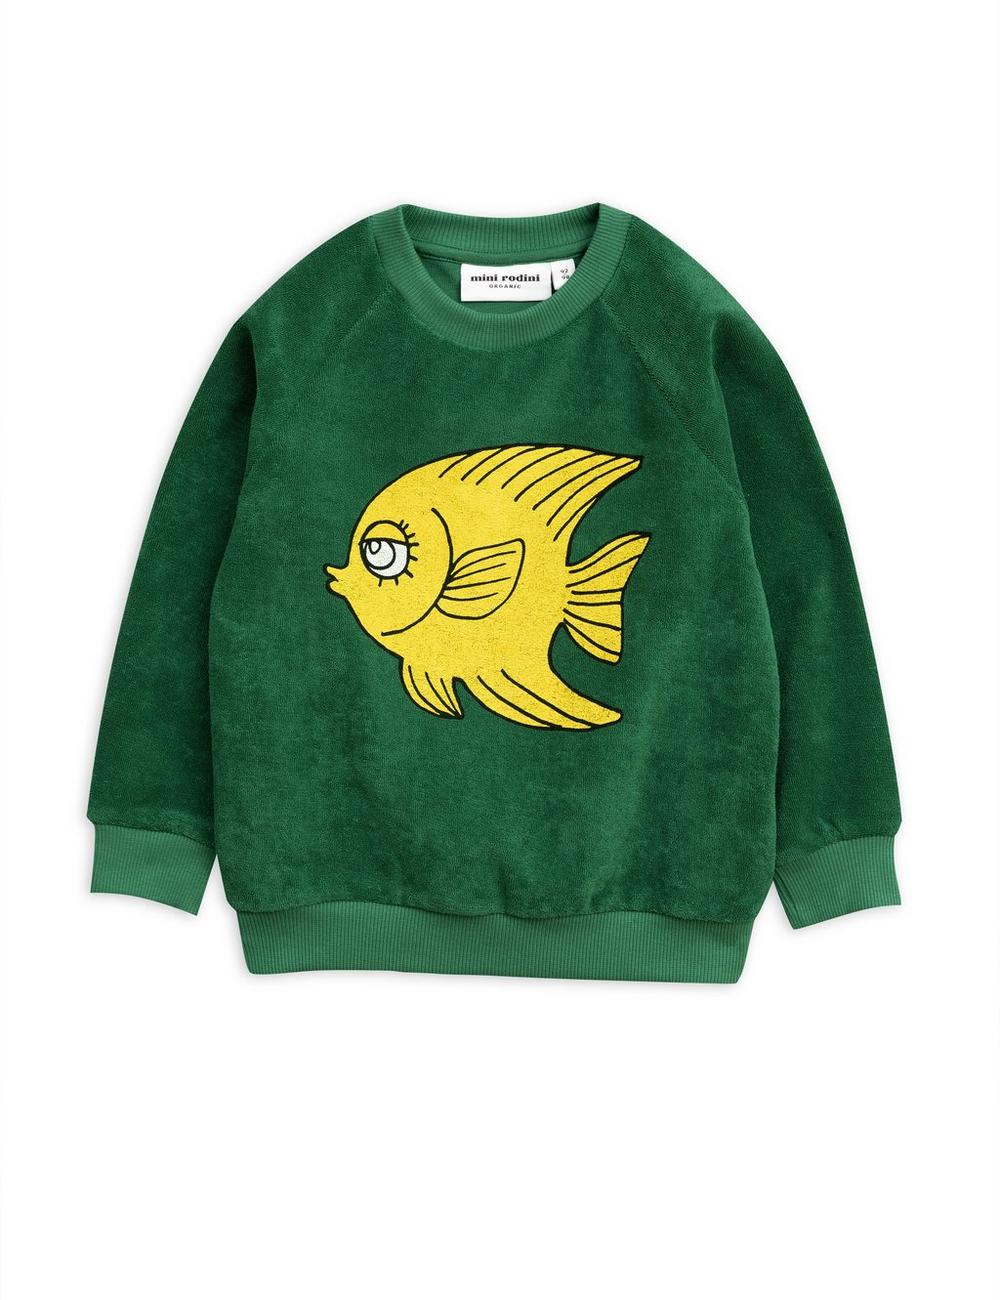 Fish Terry Sweatshirt 6-12 Months